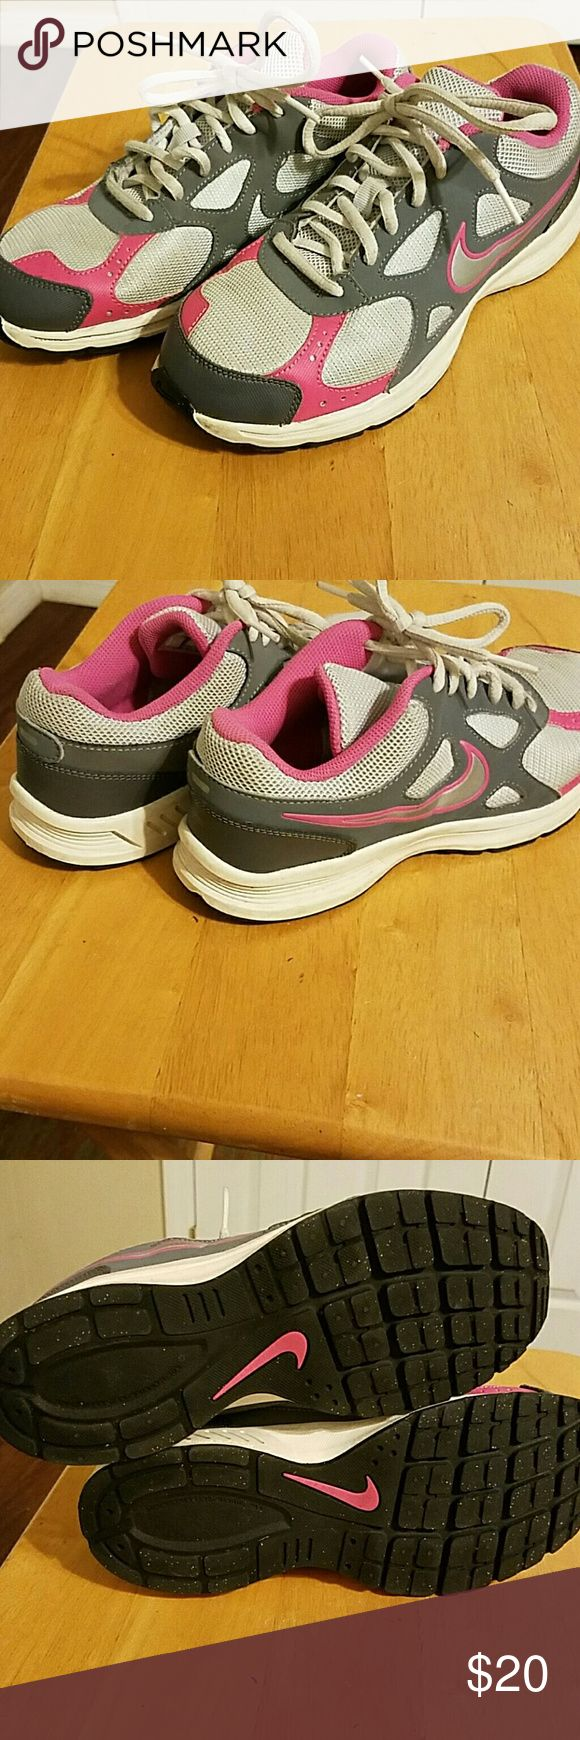 Ladies/girls Nike running sneakers Nike ladies/girls runners in excellent condition, worn by my daughter just a few times at golds gym expo. Nike Shoes Athletic Shoes